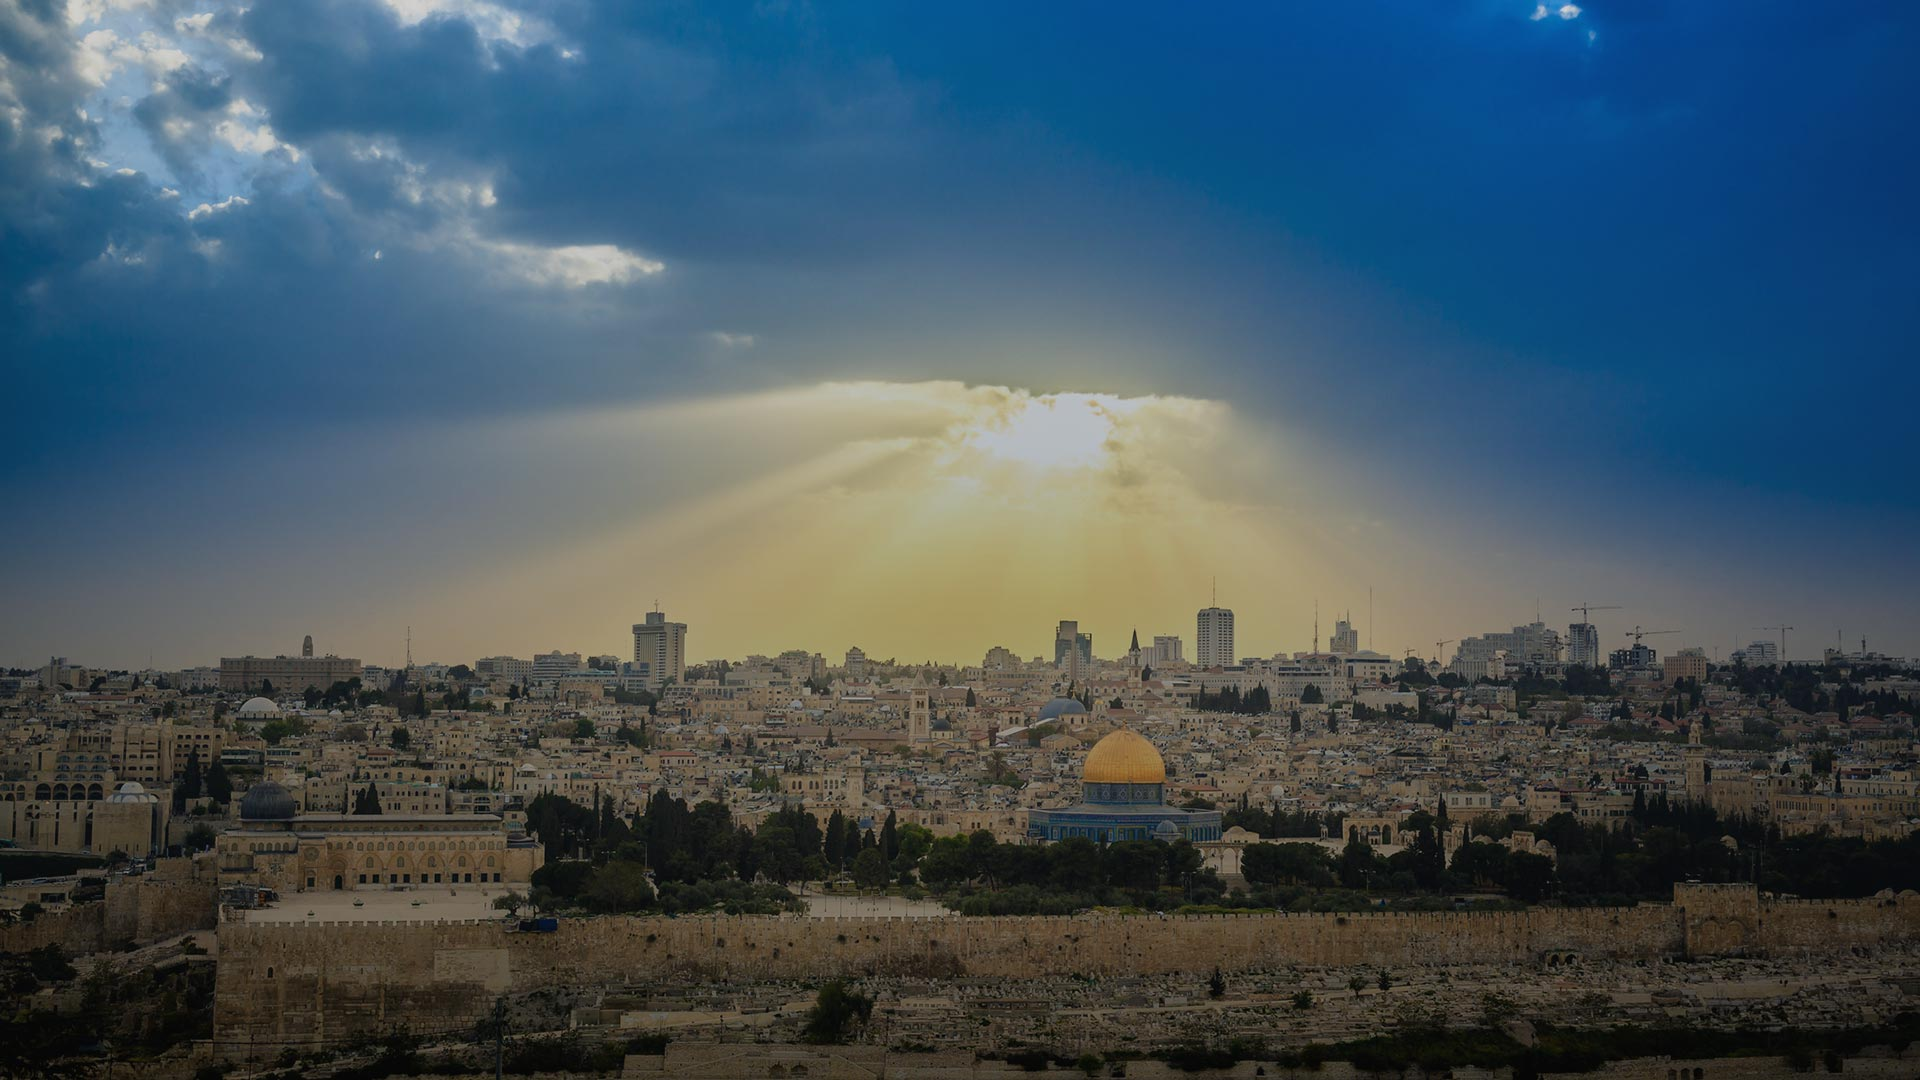 Canadian Holy Land Tours